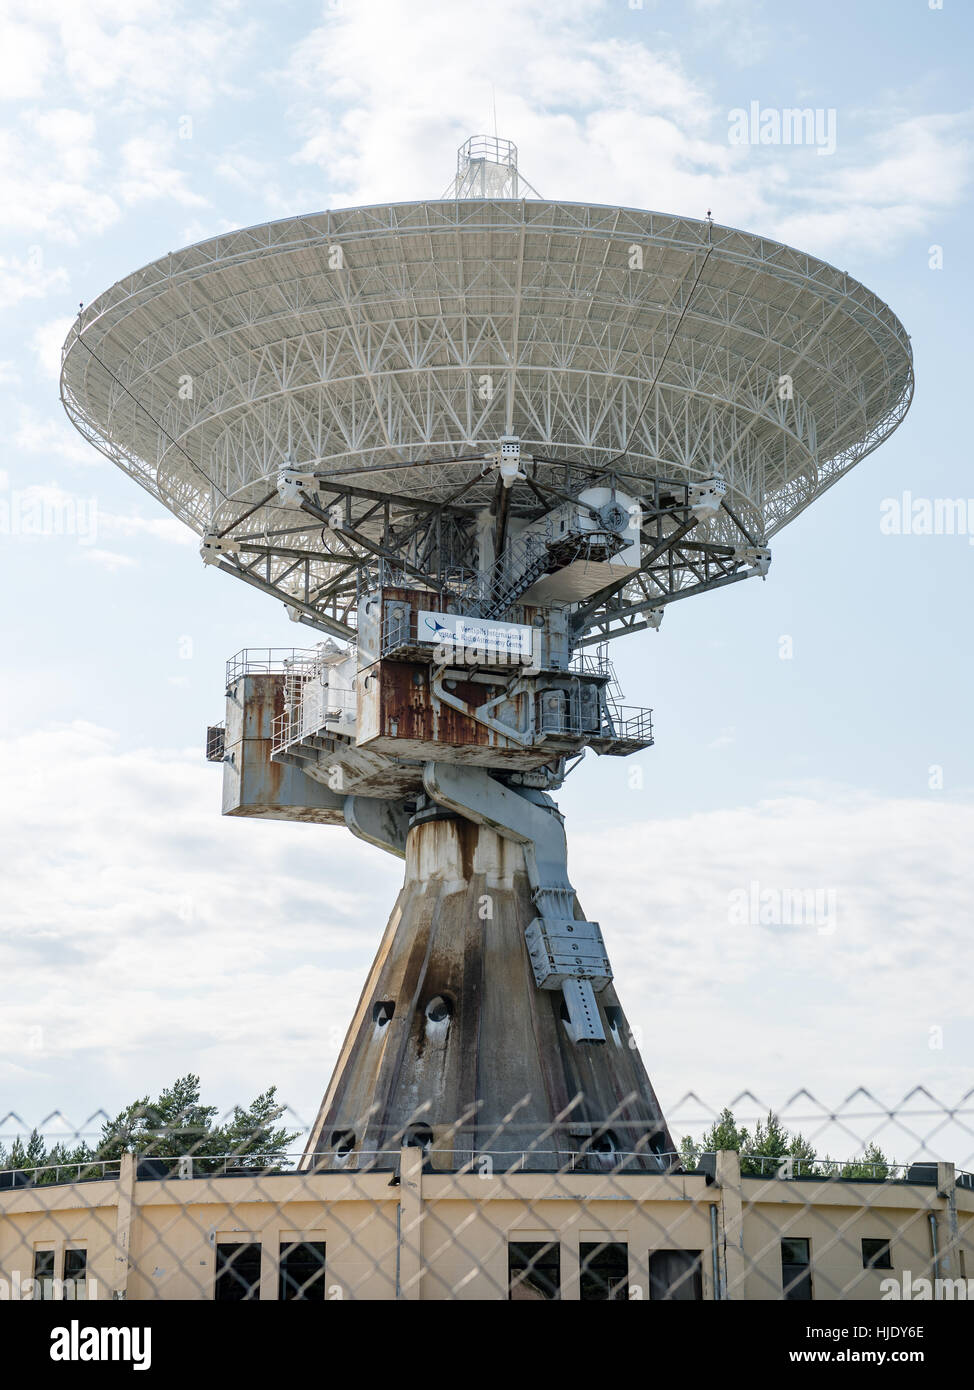 transmitter tower. radar lines with sky in background - Stock Image